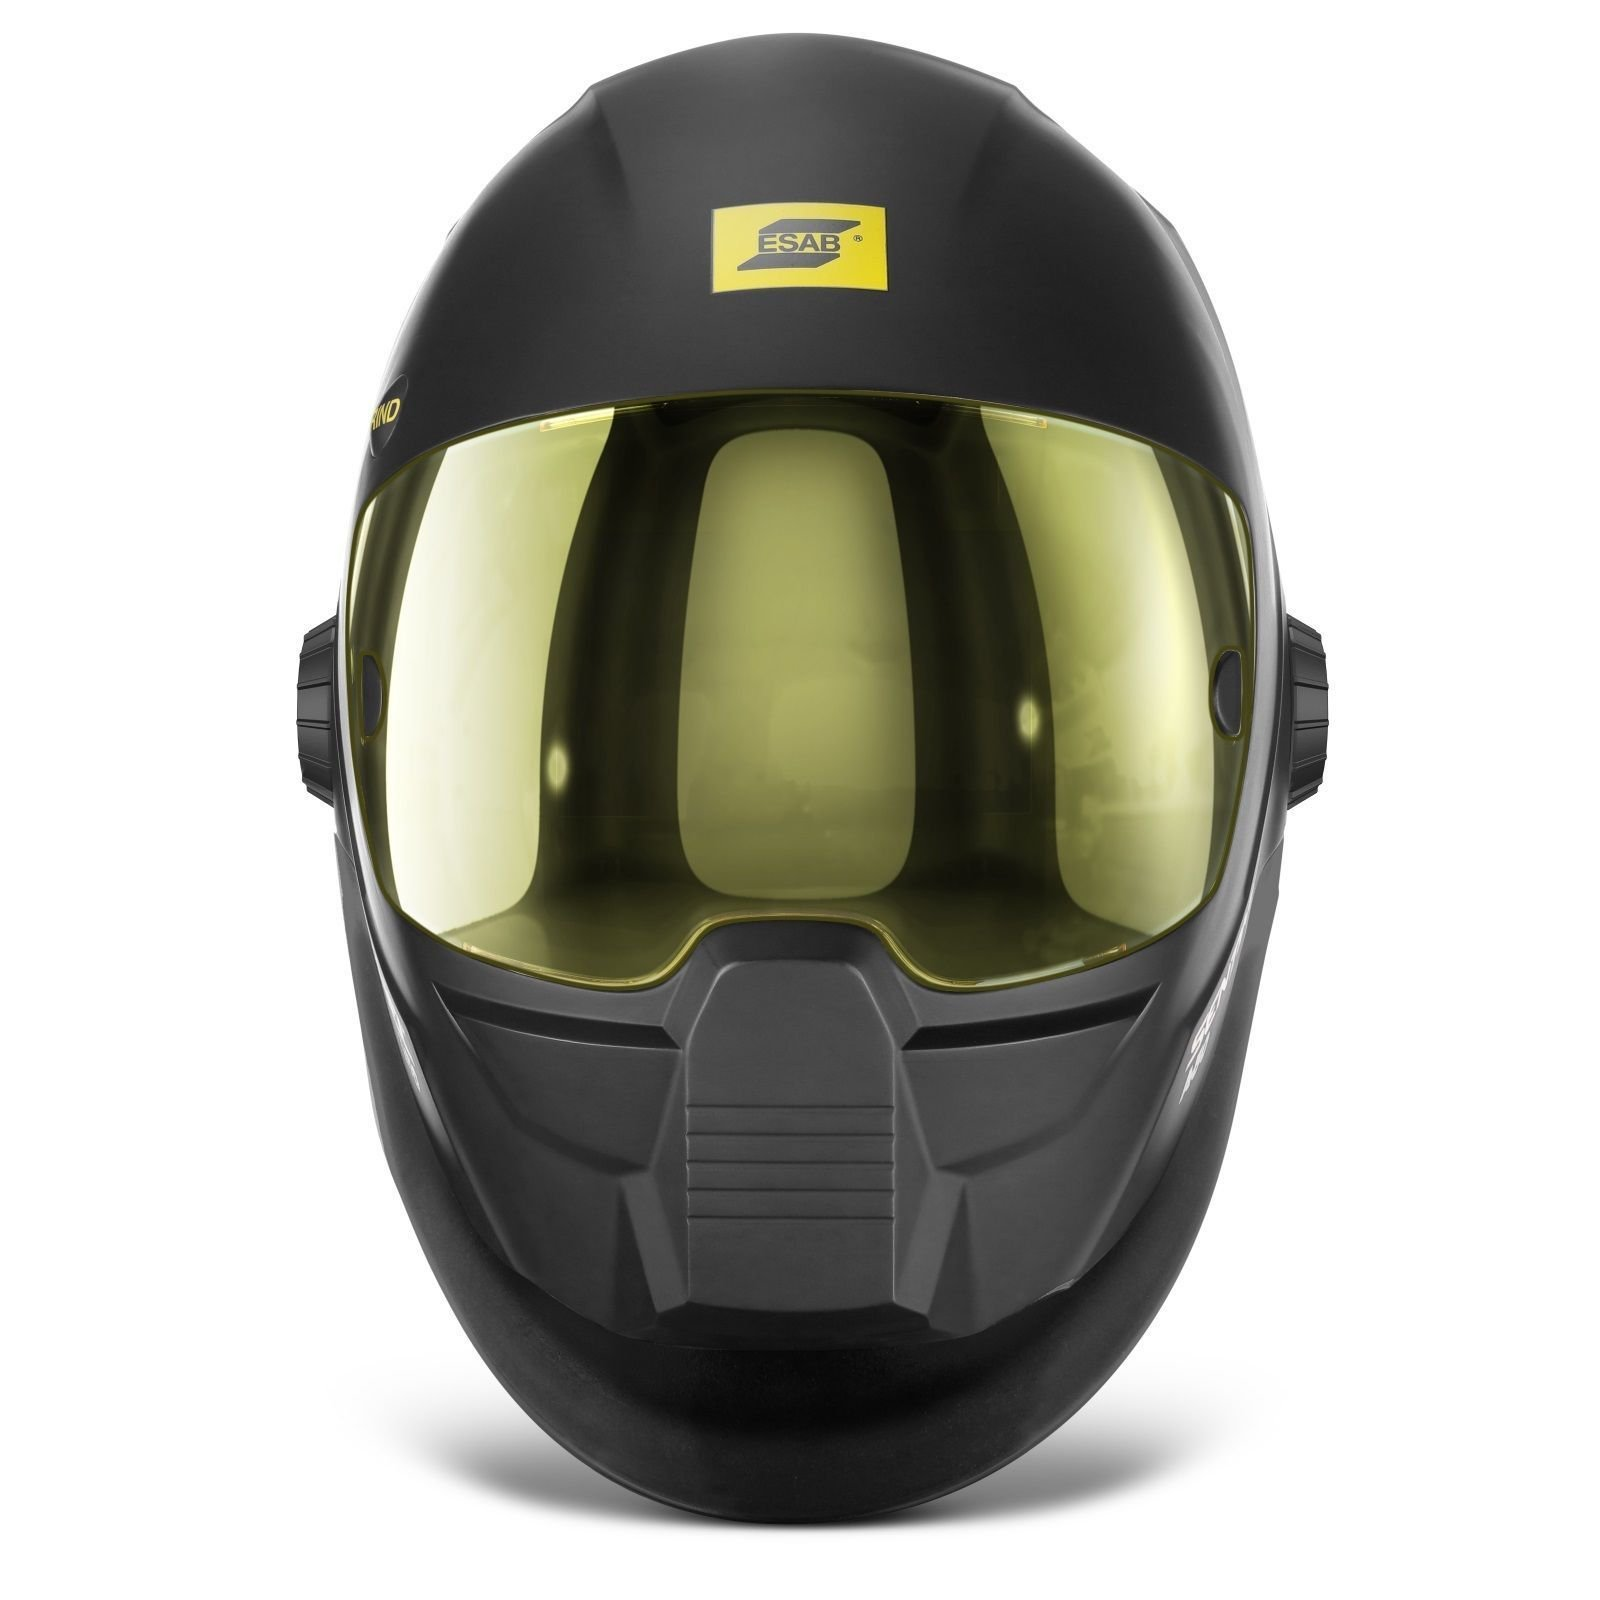 Esab Sentinel Automatic Welding A50 Helmet Hood, Part# 0700000800 - Brand New, Not In Original Packaging - Full Manufacturer's Warranty by ESAB (Image #3)